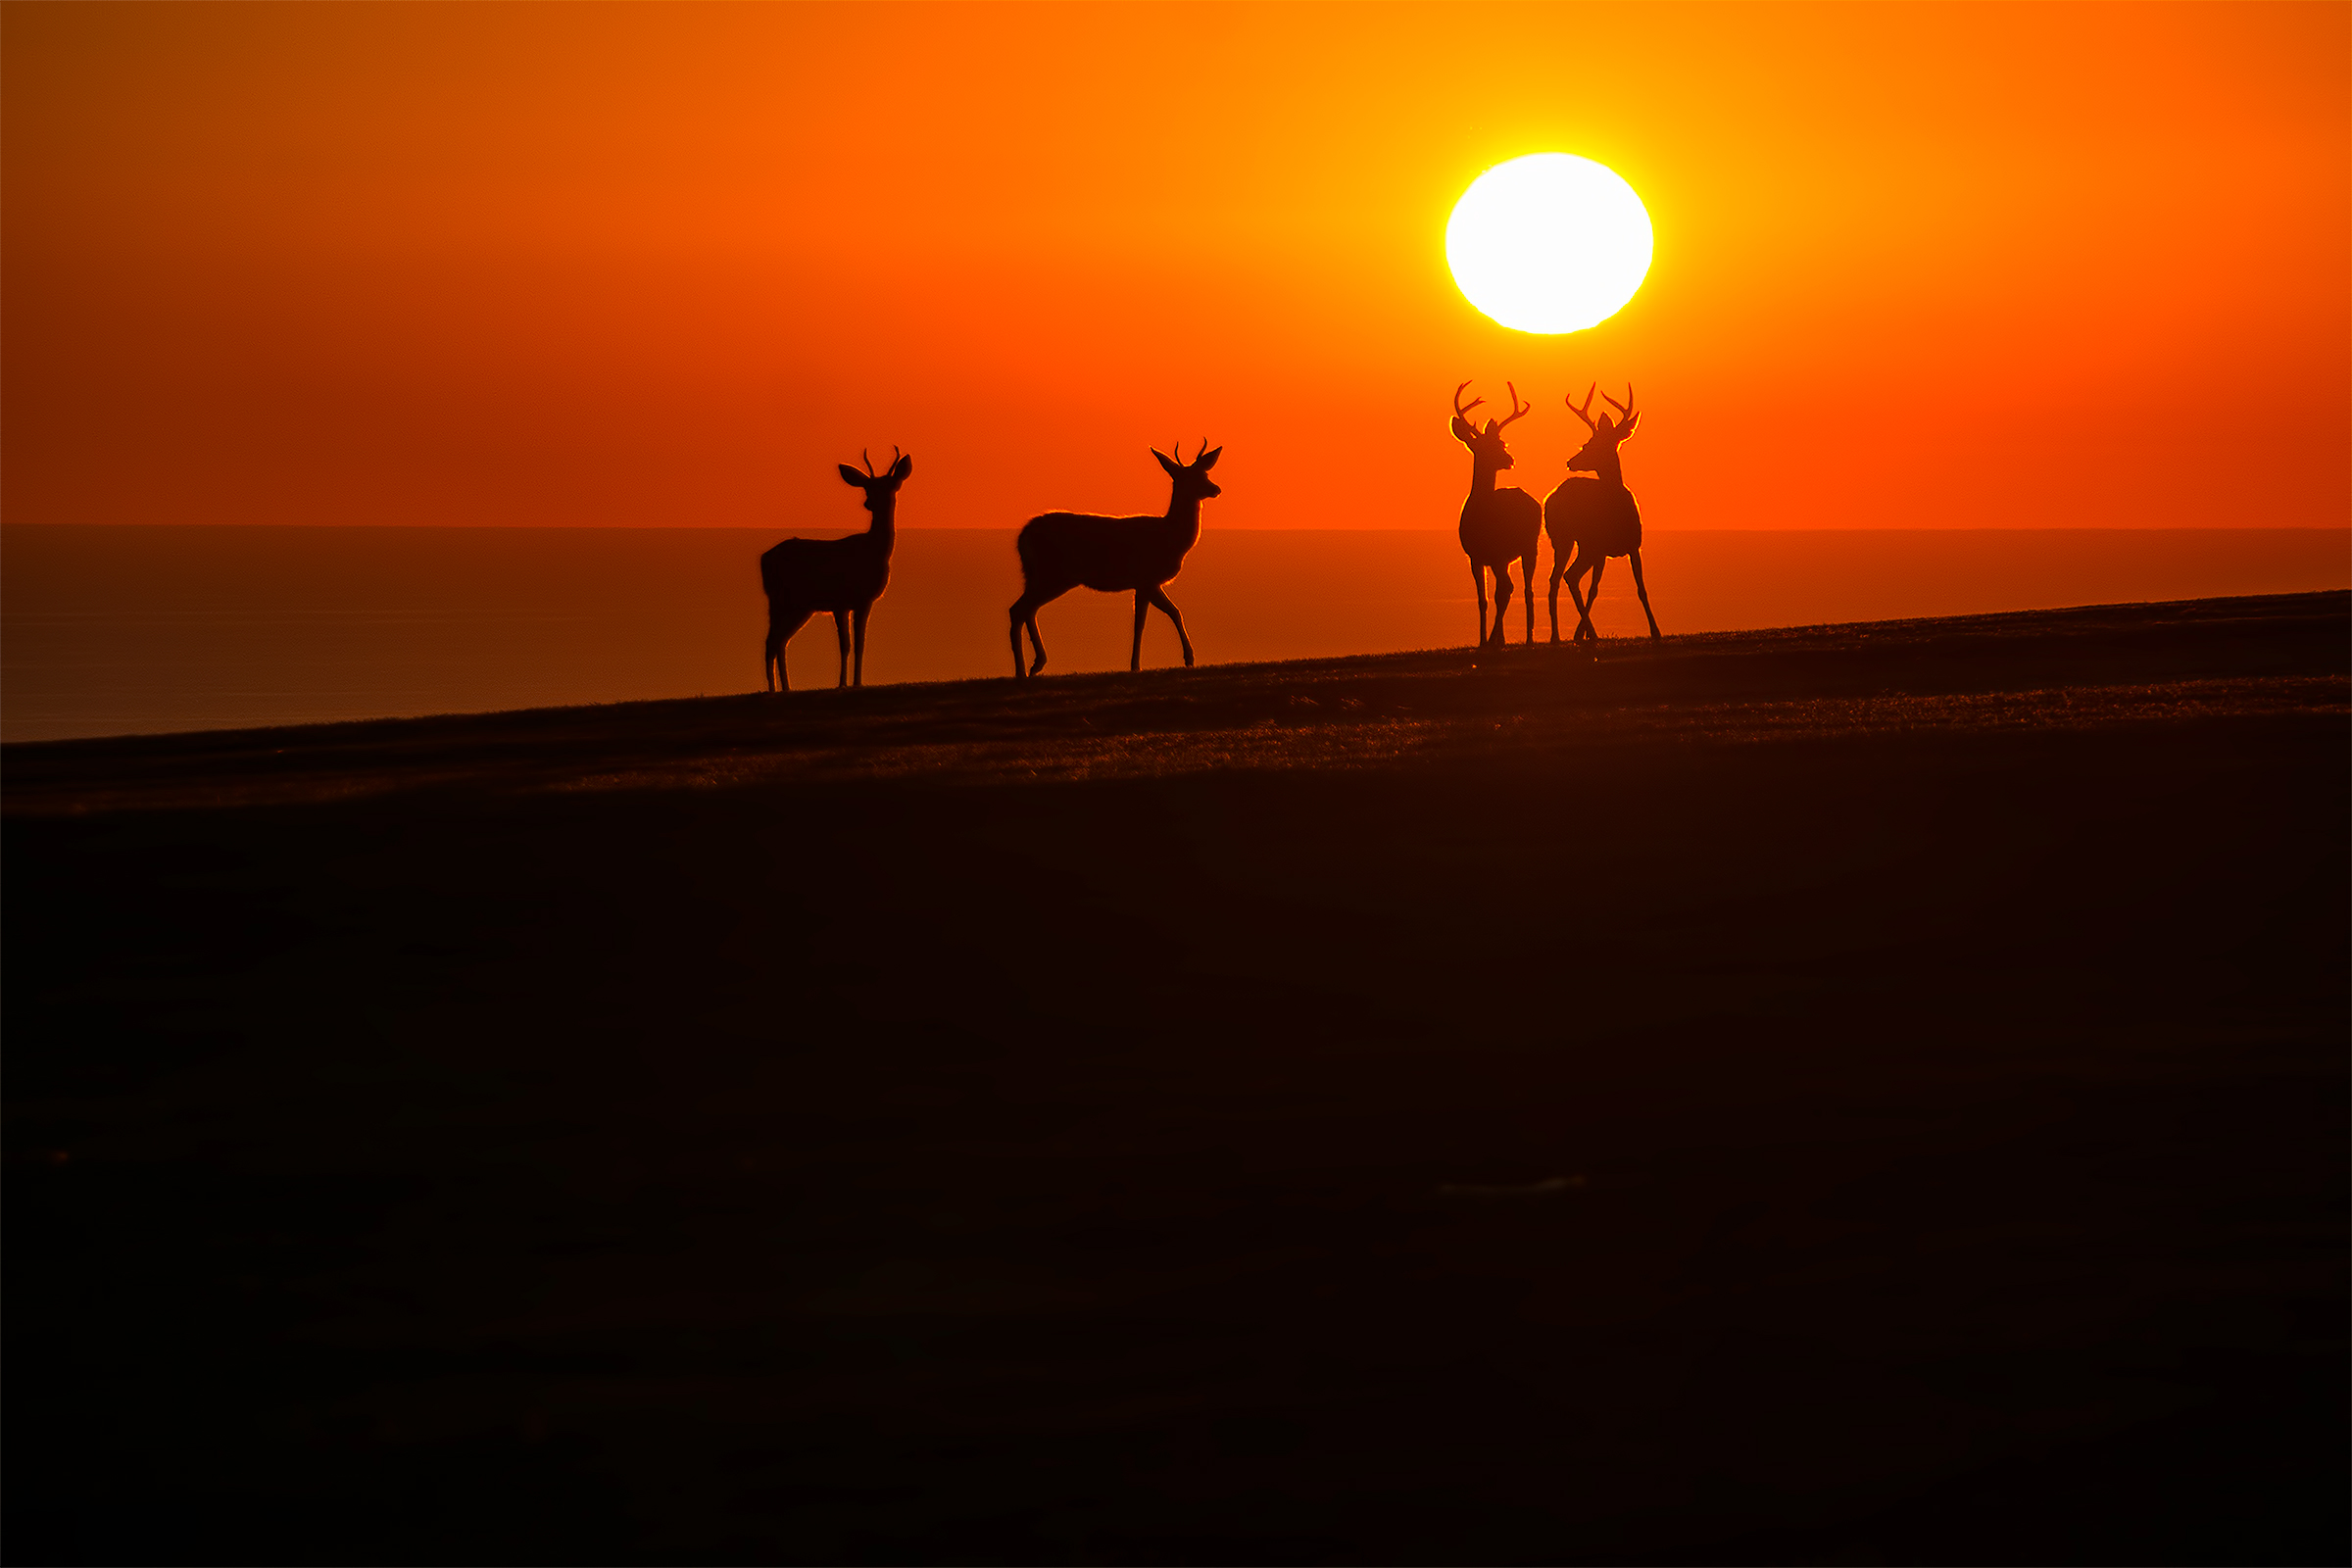 PCH_Deer_Sunset_Silhouette_Samsung_NX300_Wasim Muklashy Photography